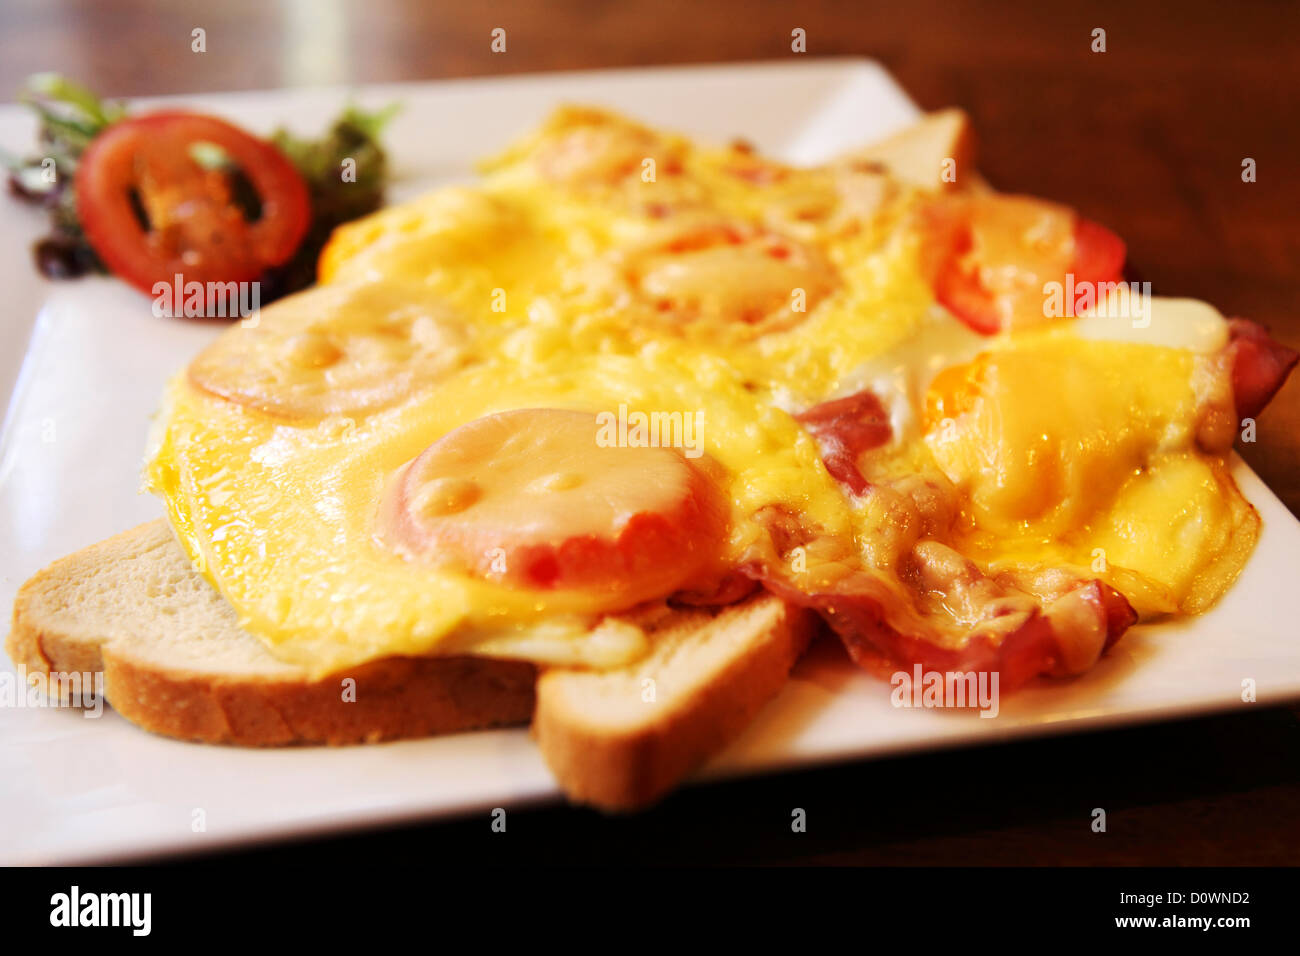 An Uitsmaker, fried egg served on toasted bread, is served in Amsterdam, the Netherlands. - Stock Image